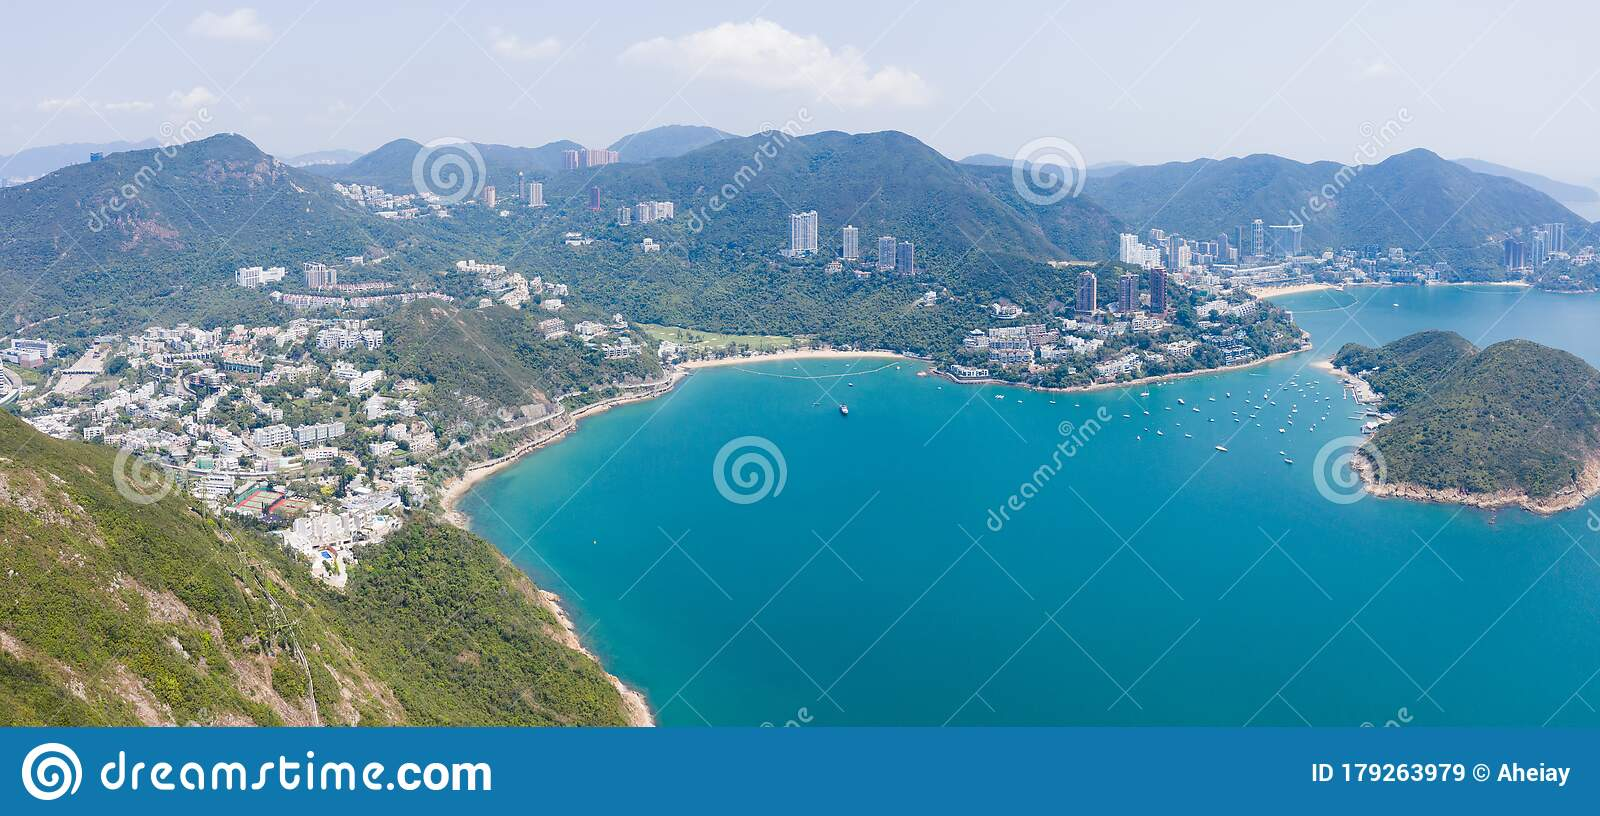 Deep Water Bay. Rich And Luxury Residentialare In South Of Hong Kong Island Stock Image - Image of deep. beach: 179263979